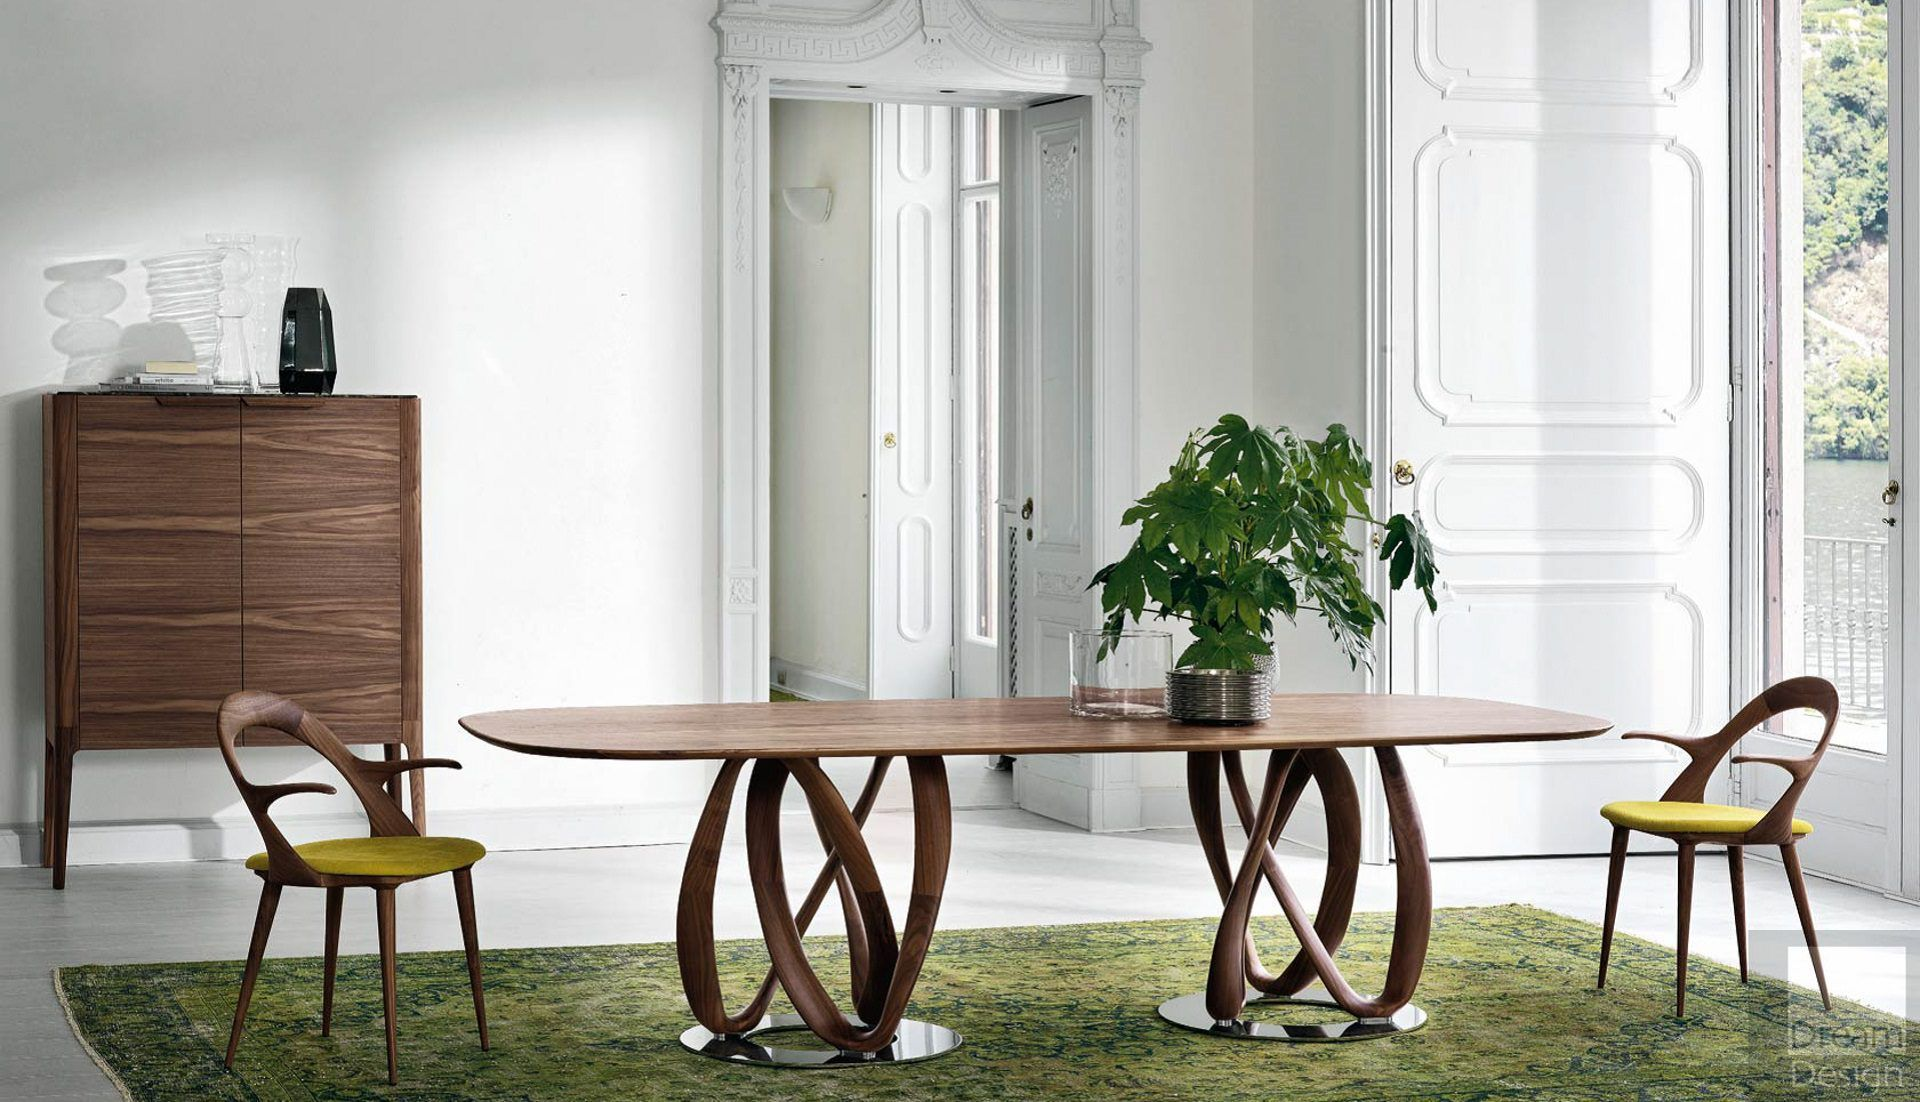 Porada Infinity Oval 2 Base Wood Table